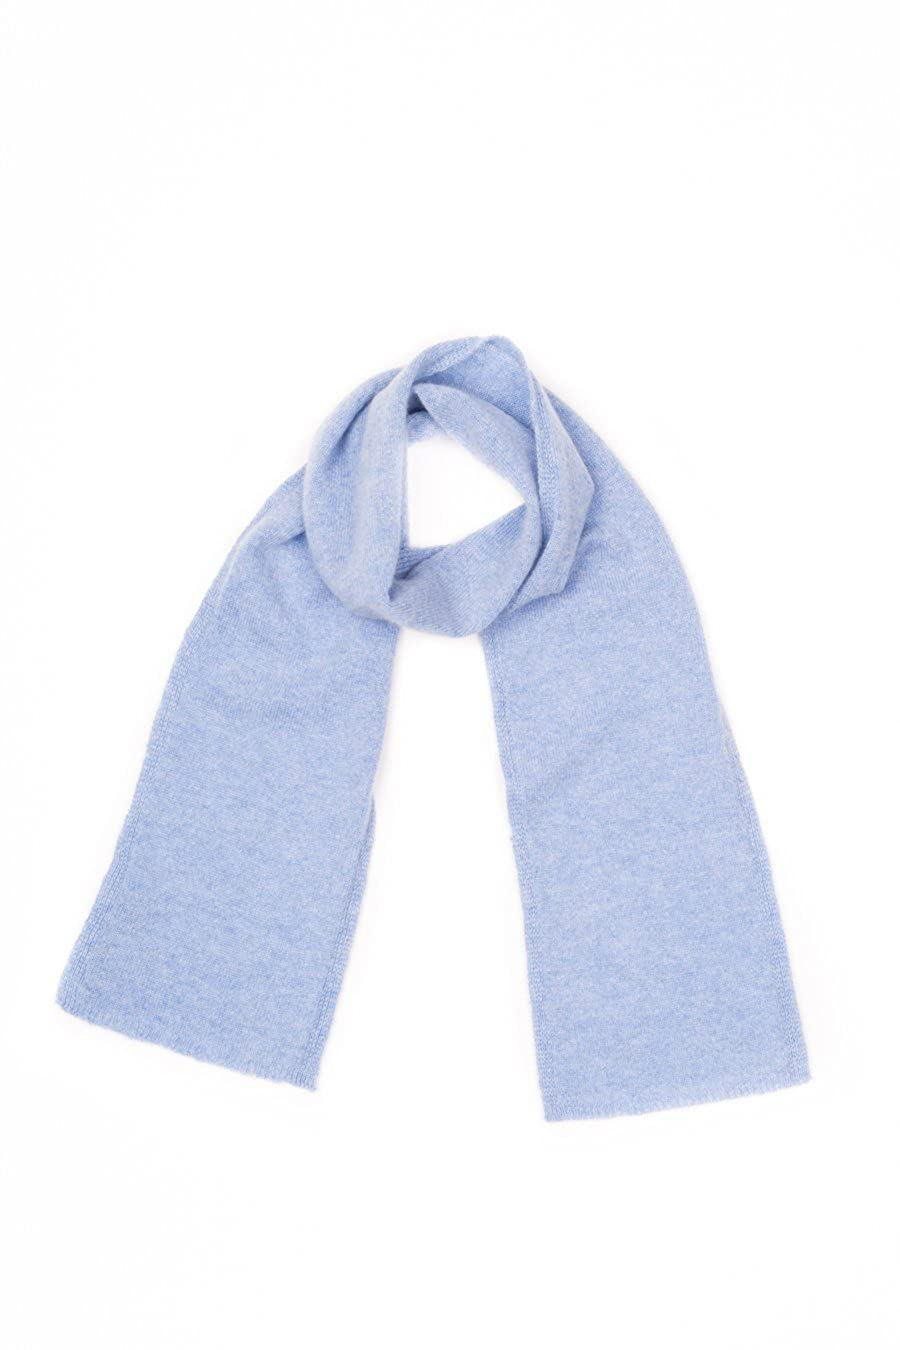 Dalle Piane Cashmere - Scarf 100% cashmere - Boy Color: Anthracite One size BAF26226BU_AN